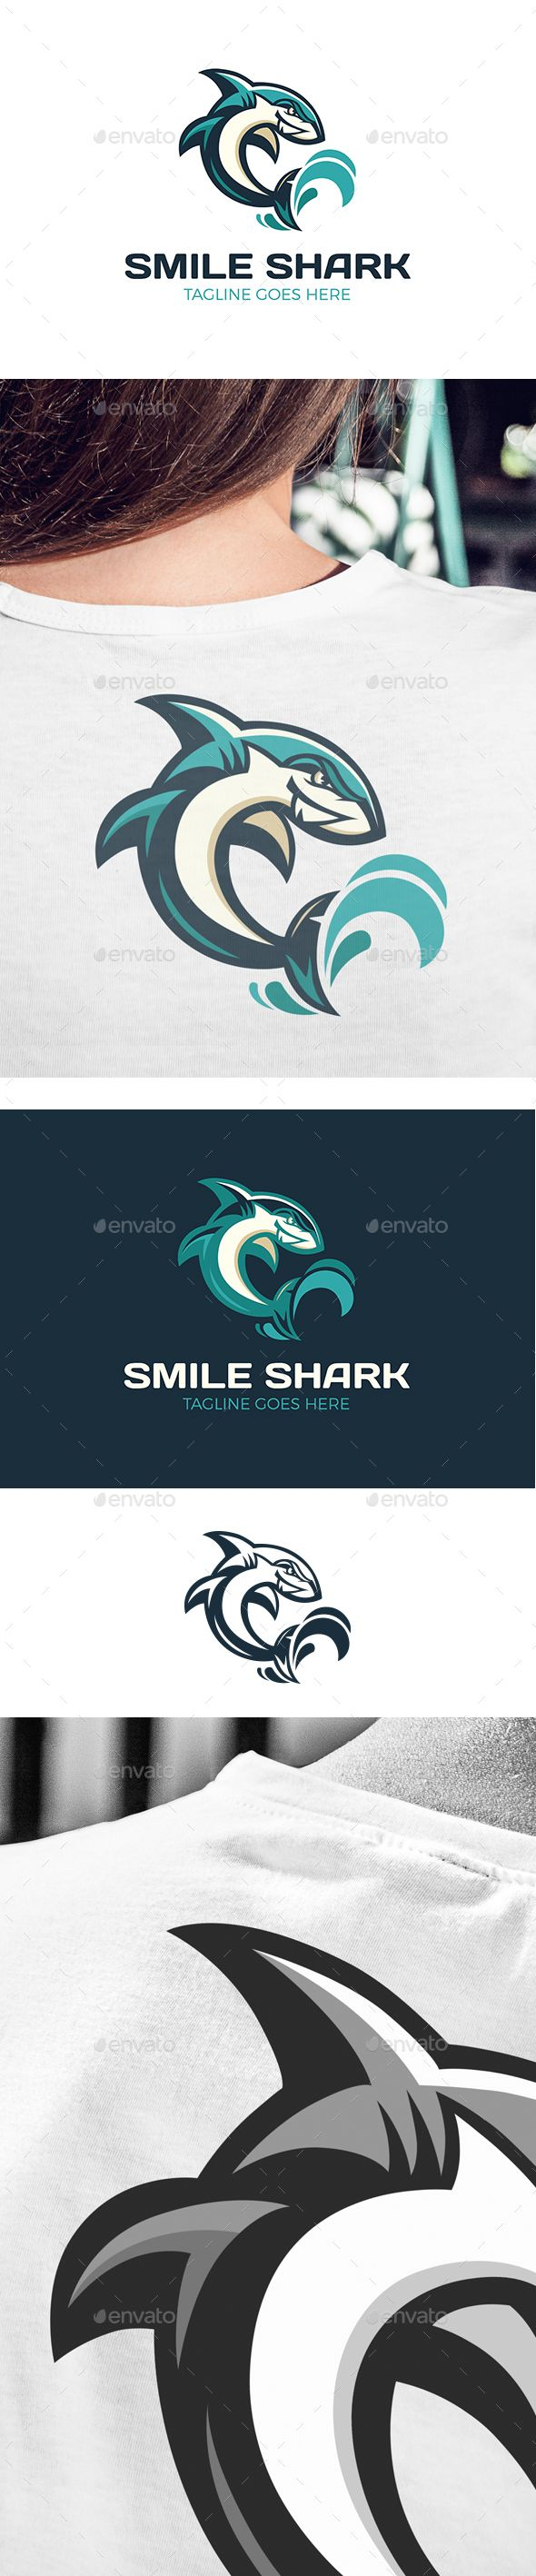 Smile Shark Logo - Animals Logo Templates